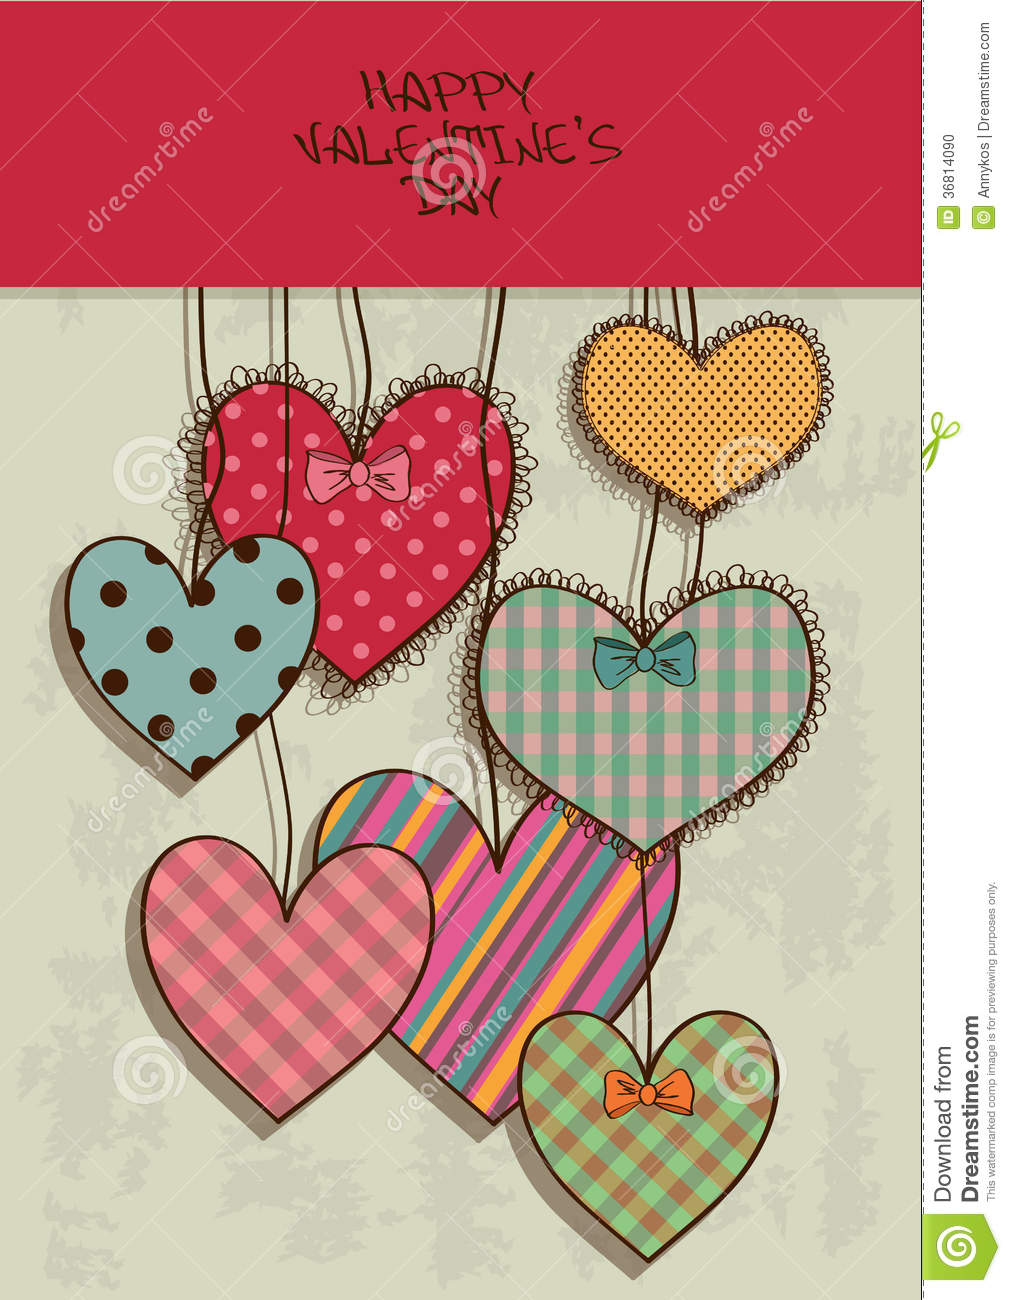 Valentines greeting card with scrapbook hearts stock vector valentines greeting card with scrapbook hearts m4hsunfo Images